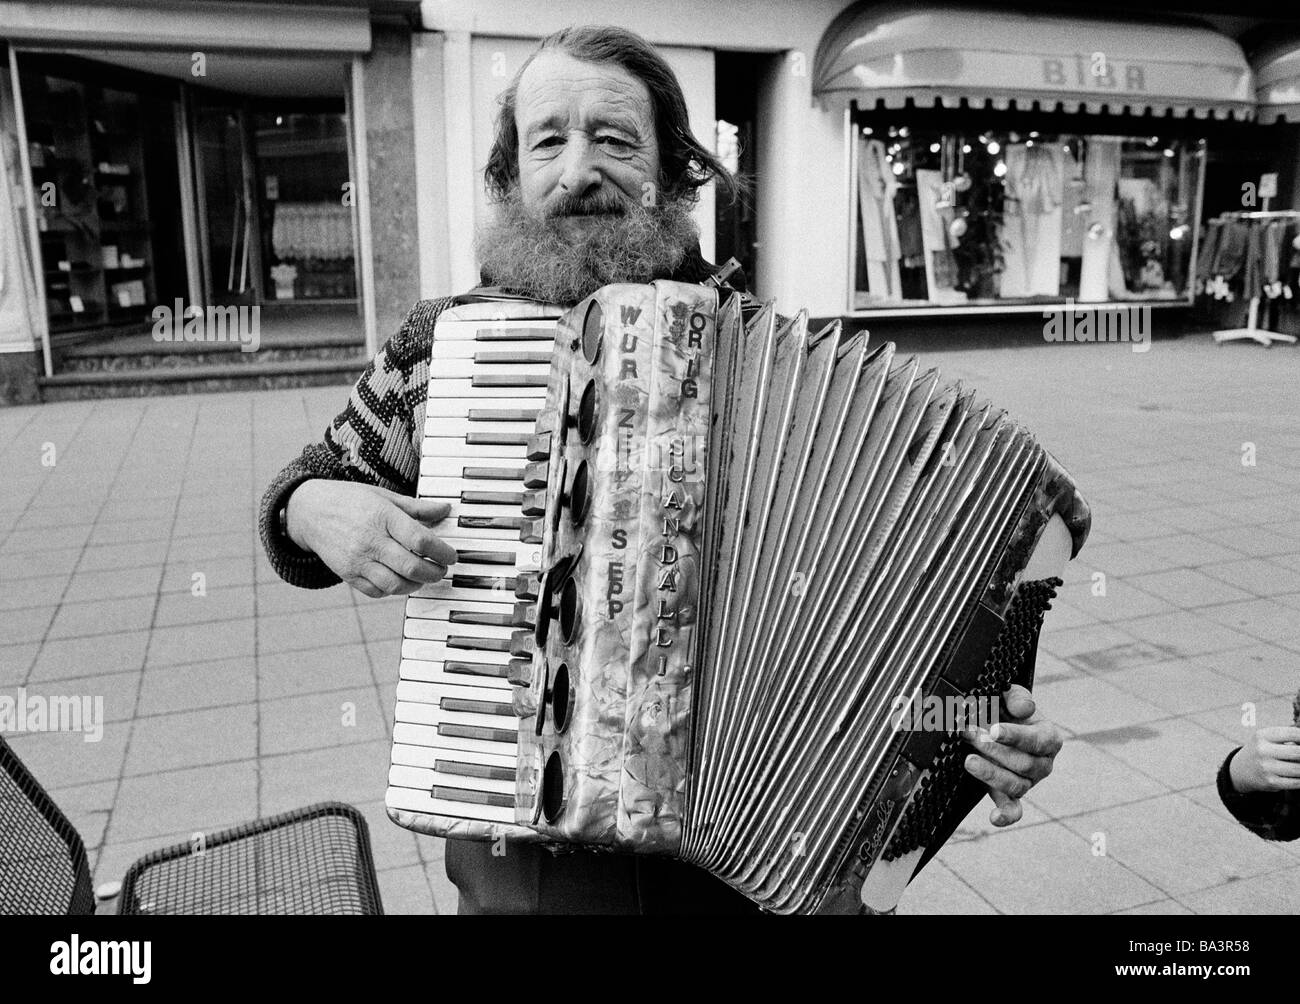 Eighties, black and white photo, people, homeless man stands in a pedestrian zone and plays on a accordion, aged - Stock Image